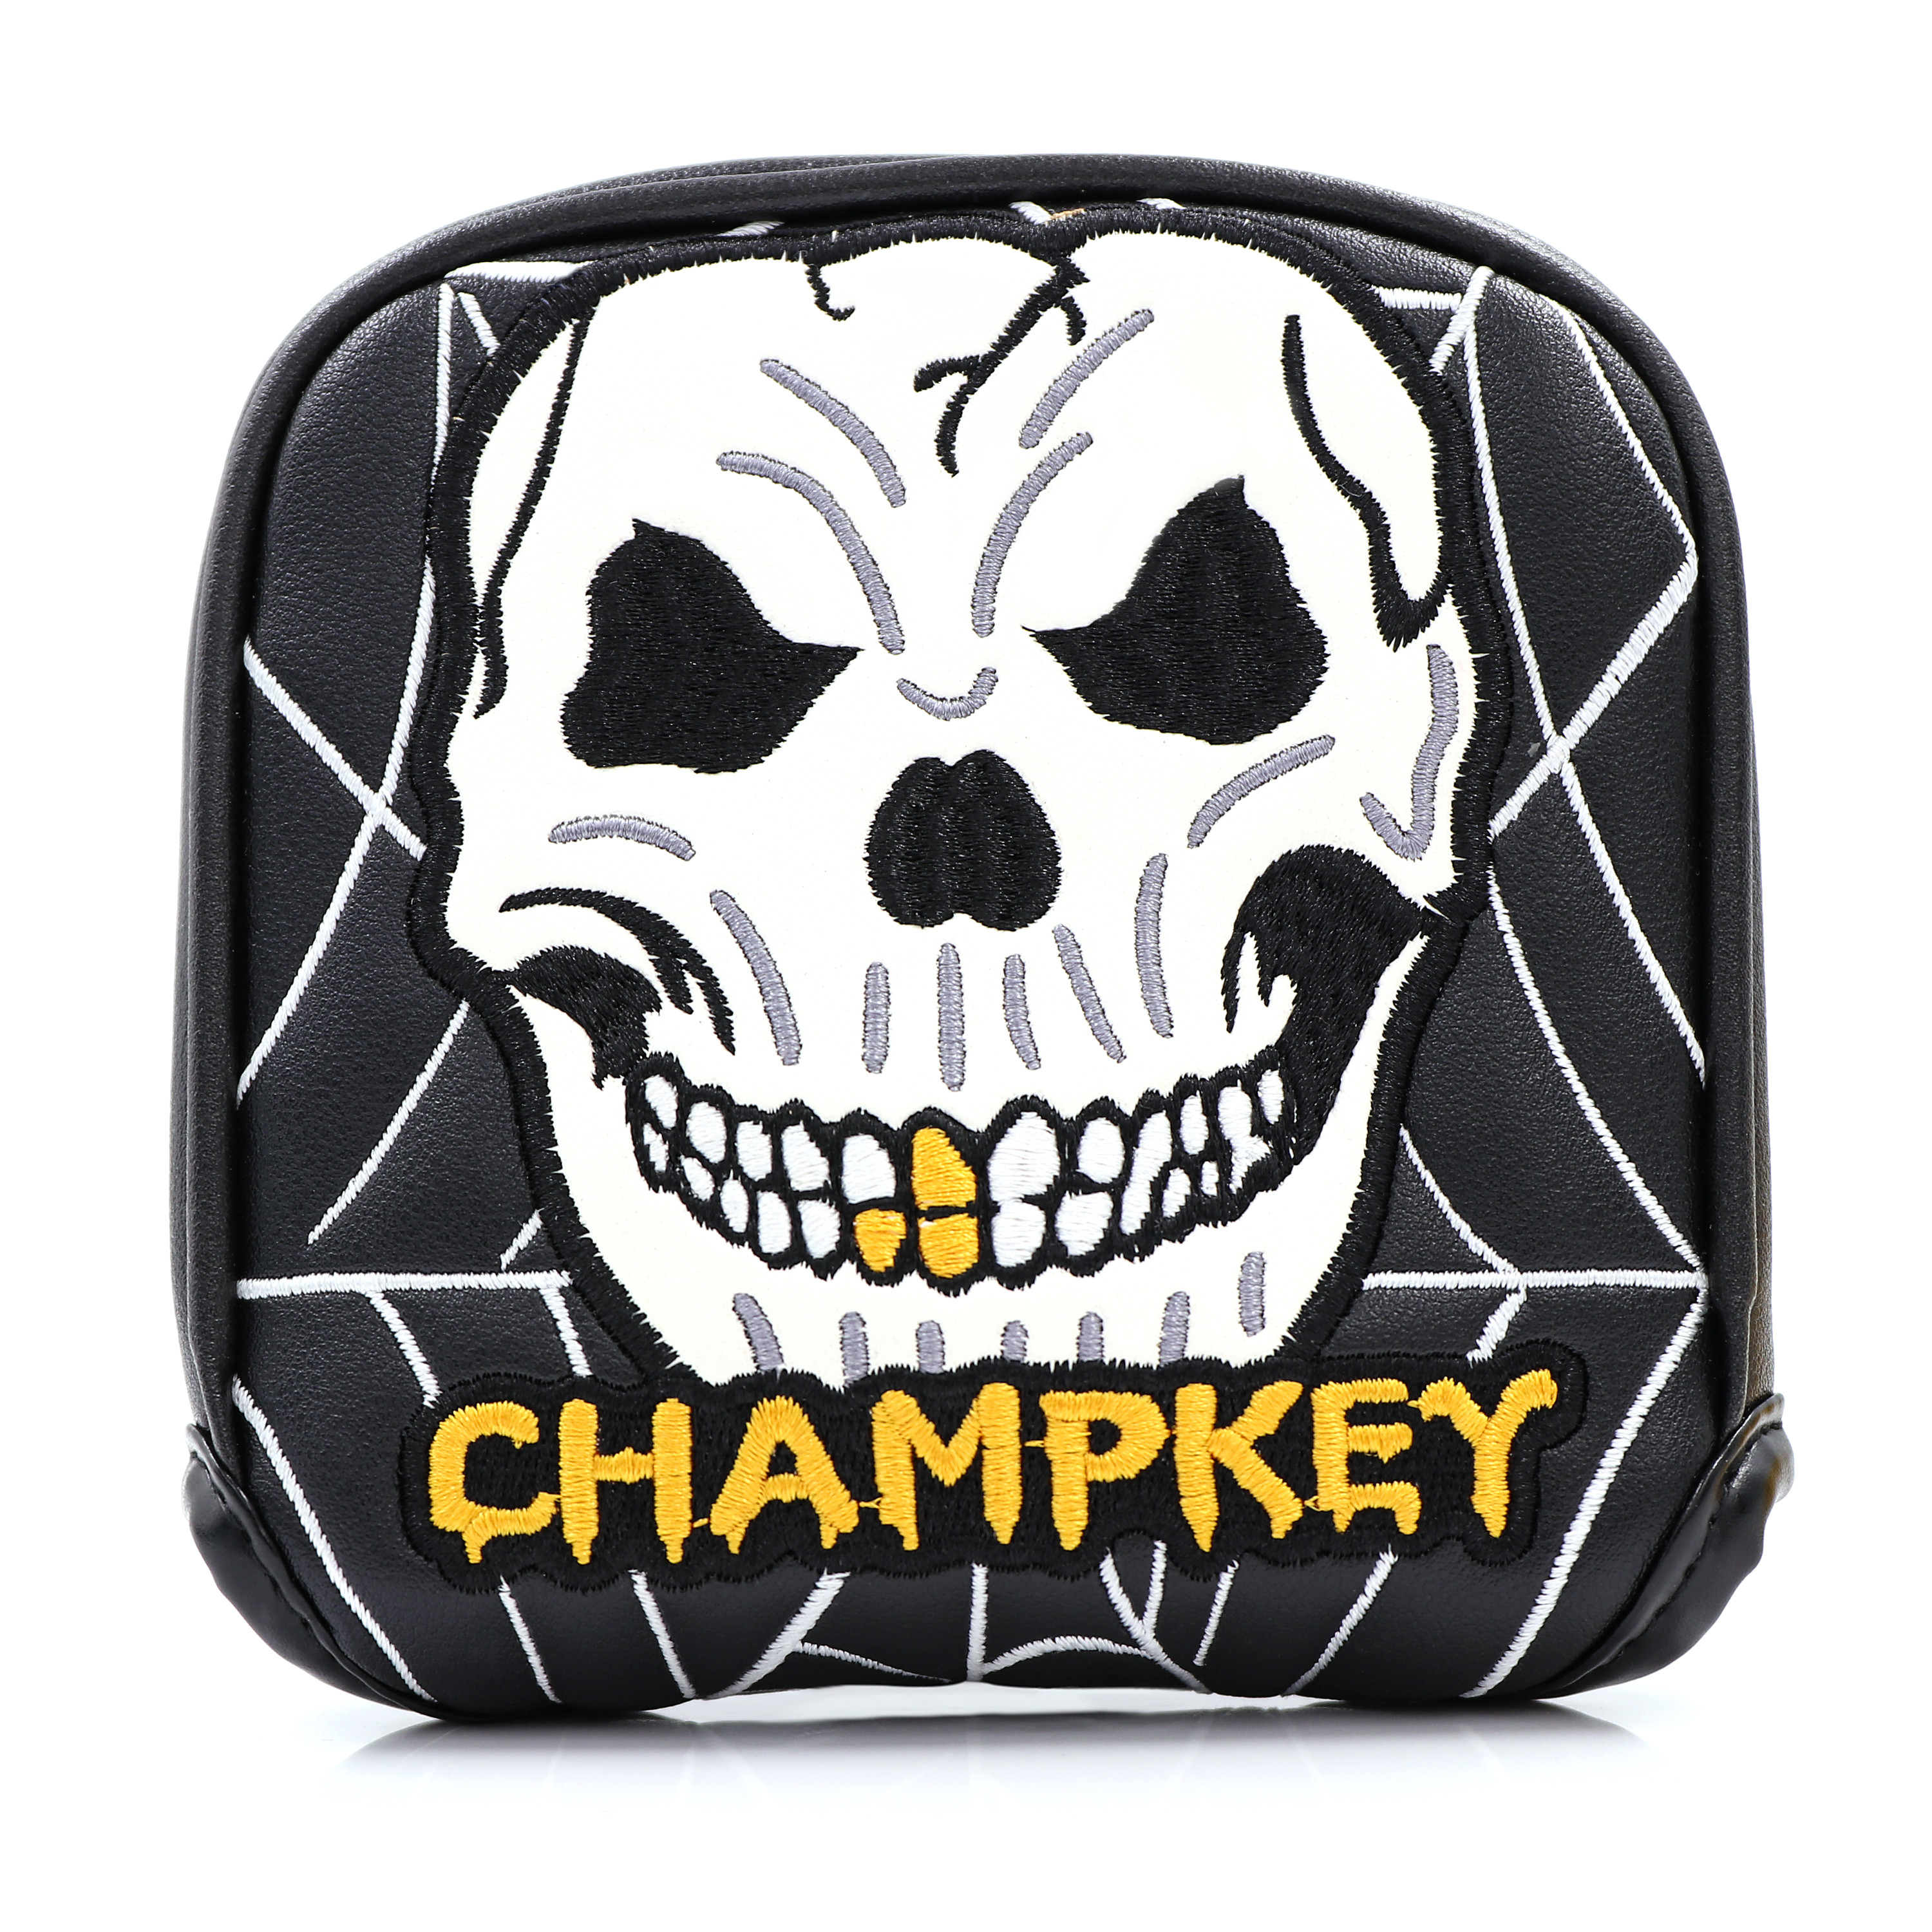 Champkey Golf Mallet Headcover Putter Cover For Center-shaft Club Magnetic Closure Black White PU Leather Skull Embroidery